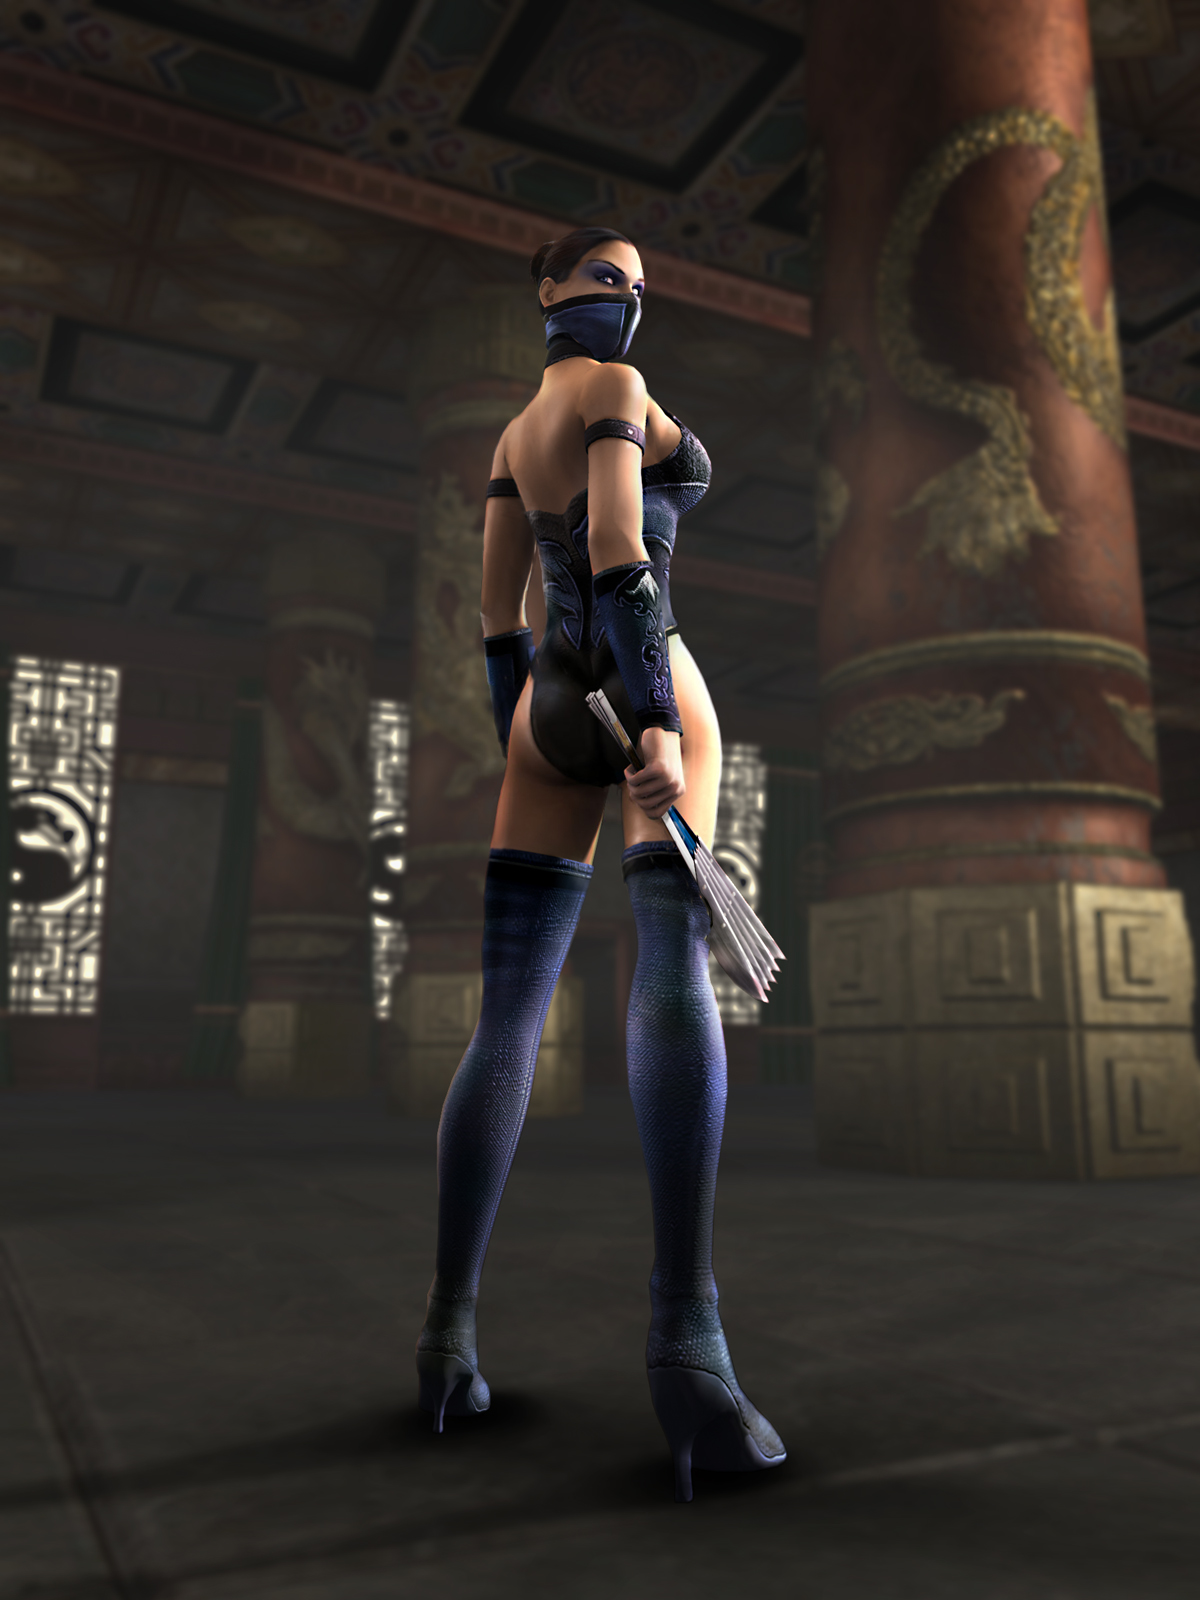 Cassie cage and kitana mortal kombat - 1 part 8